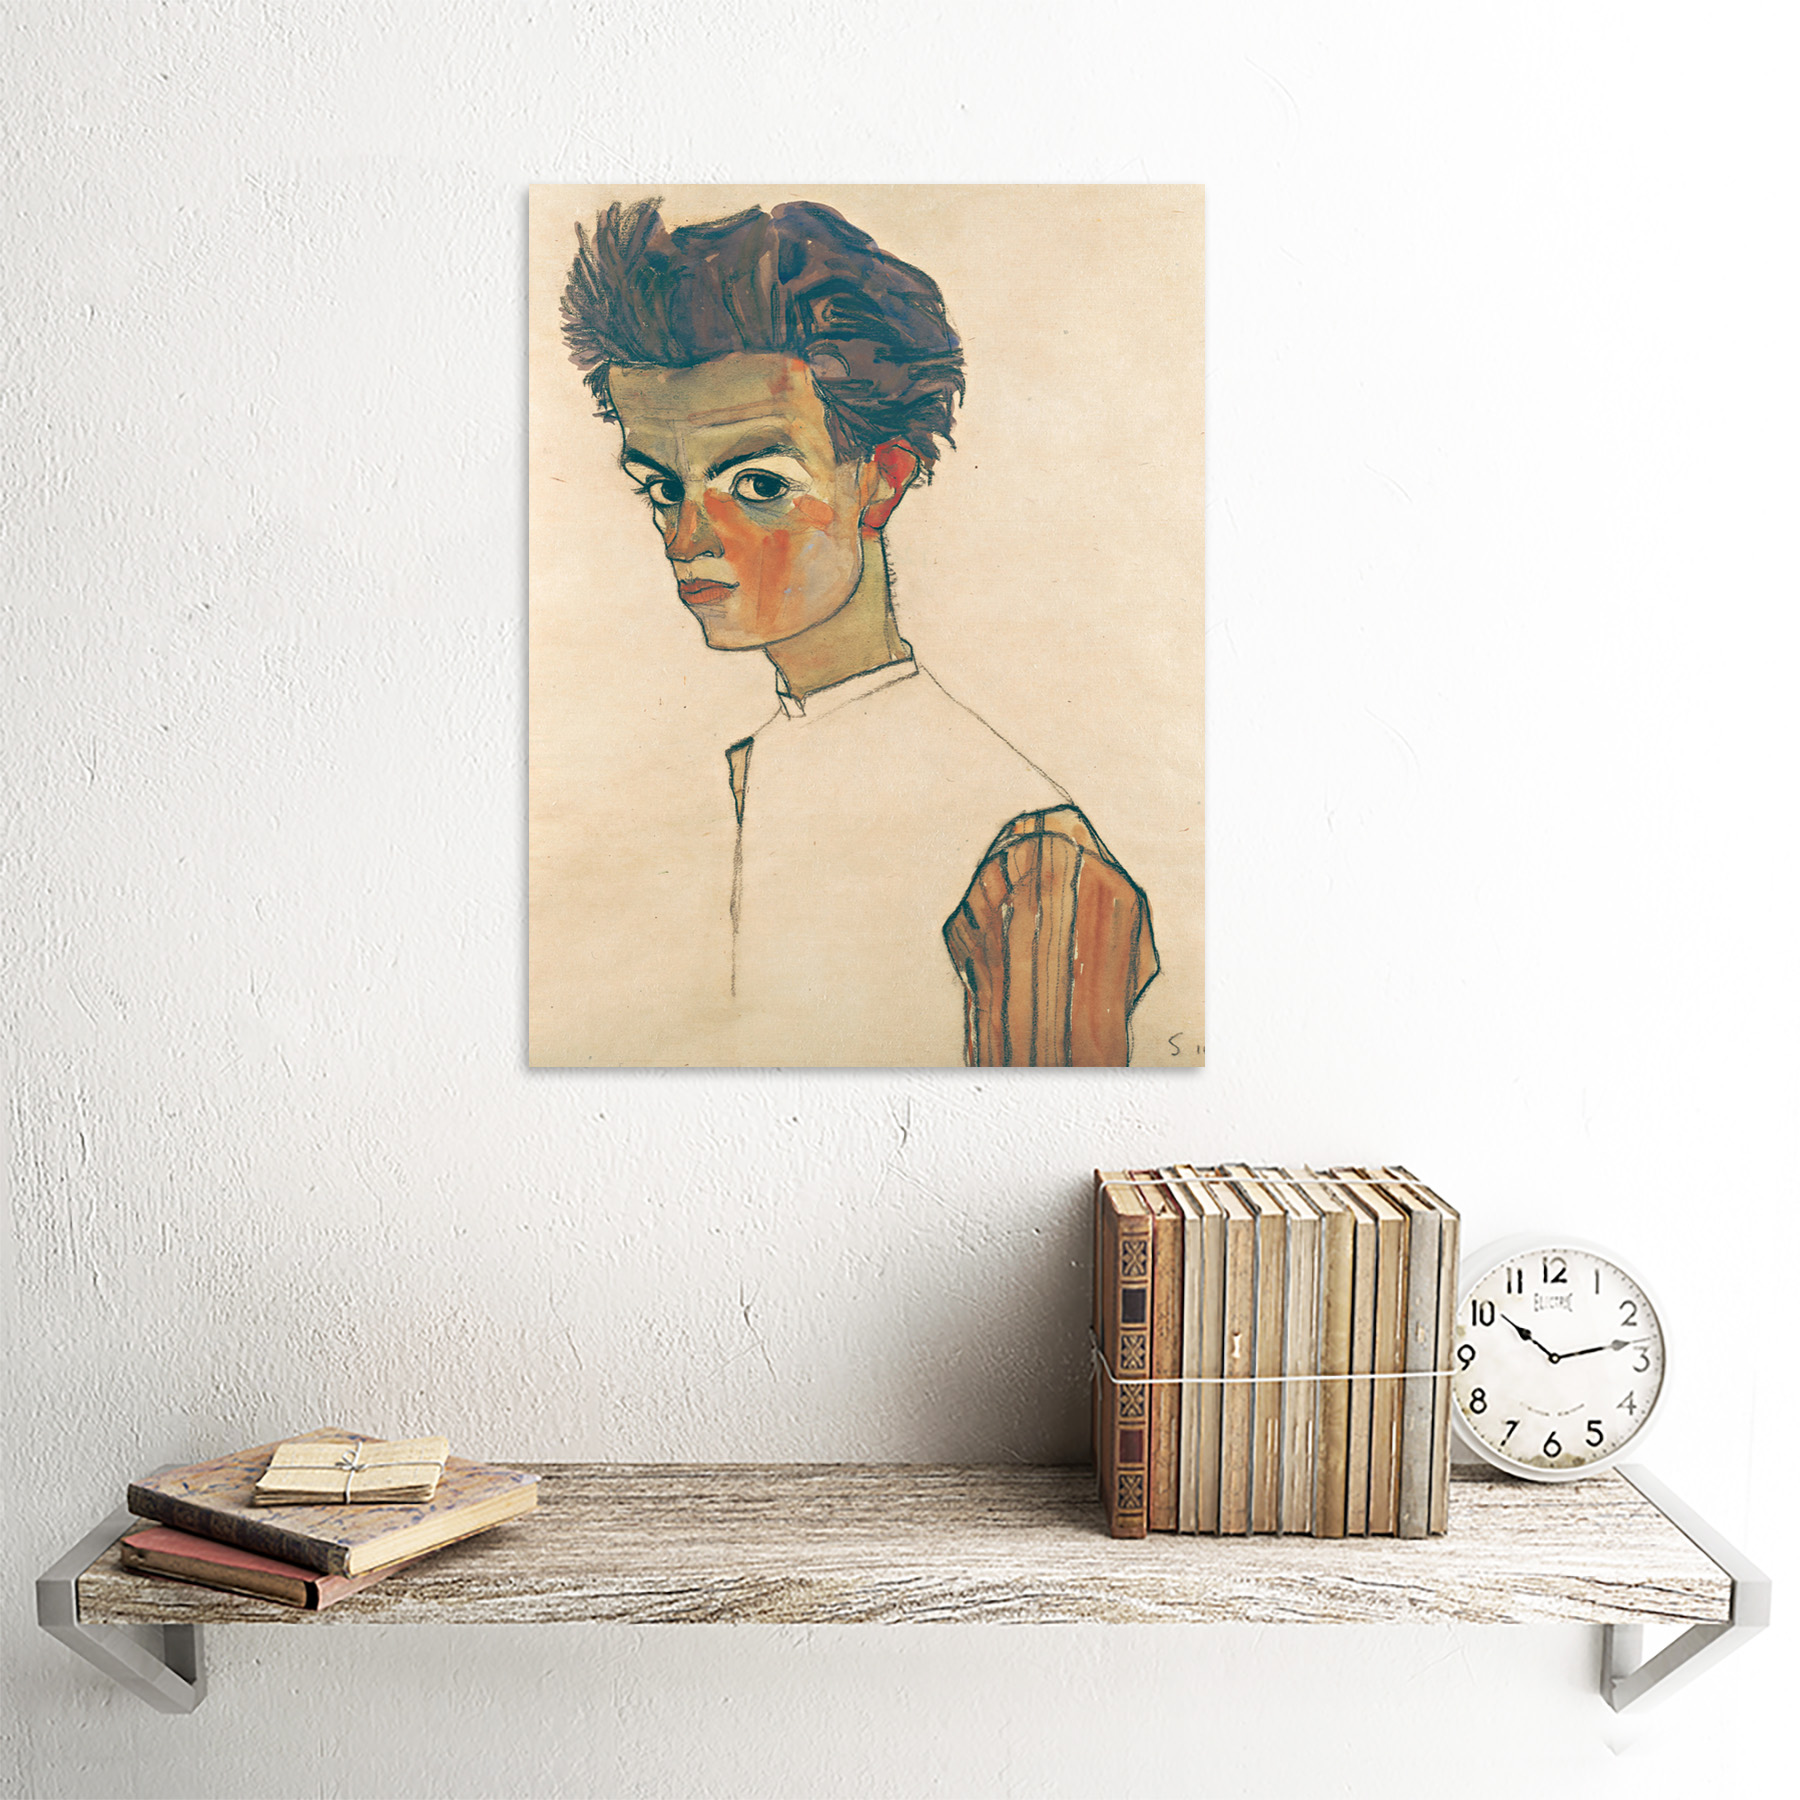 thumbnail 23 - Egon-Schiele-Self-Portrait-With-Striped-Shirt-Art-Print-Framed-12x16